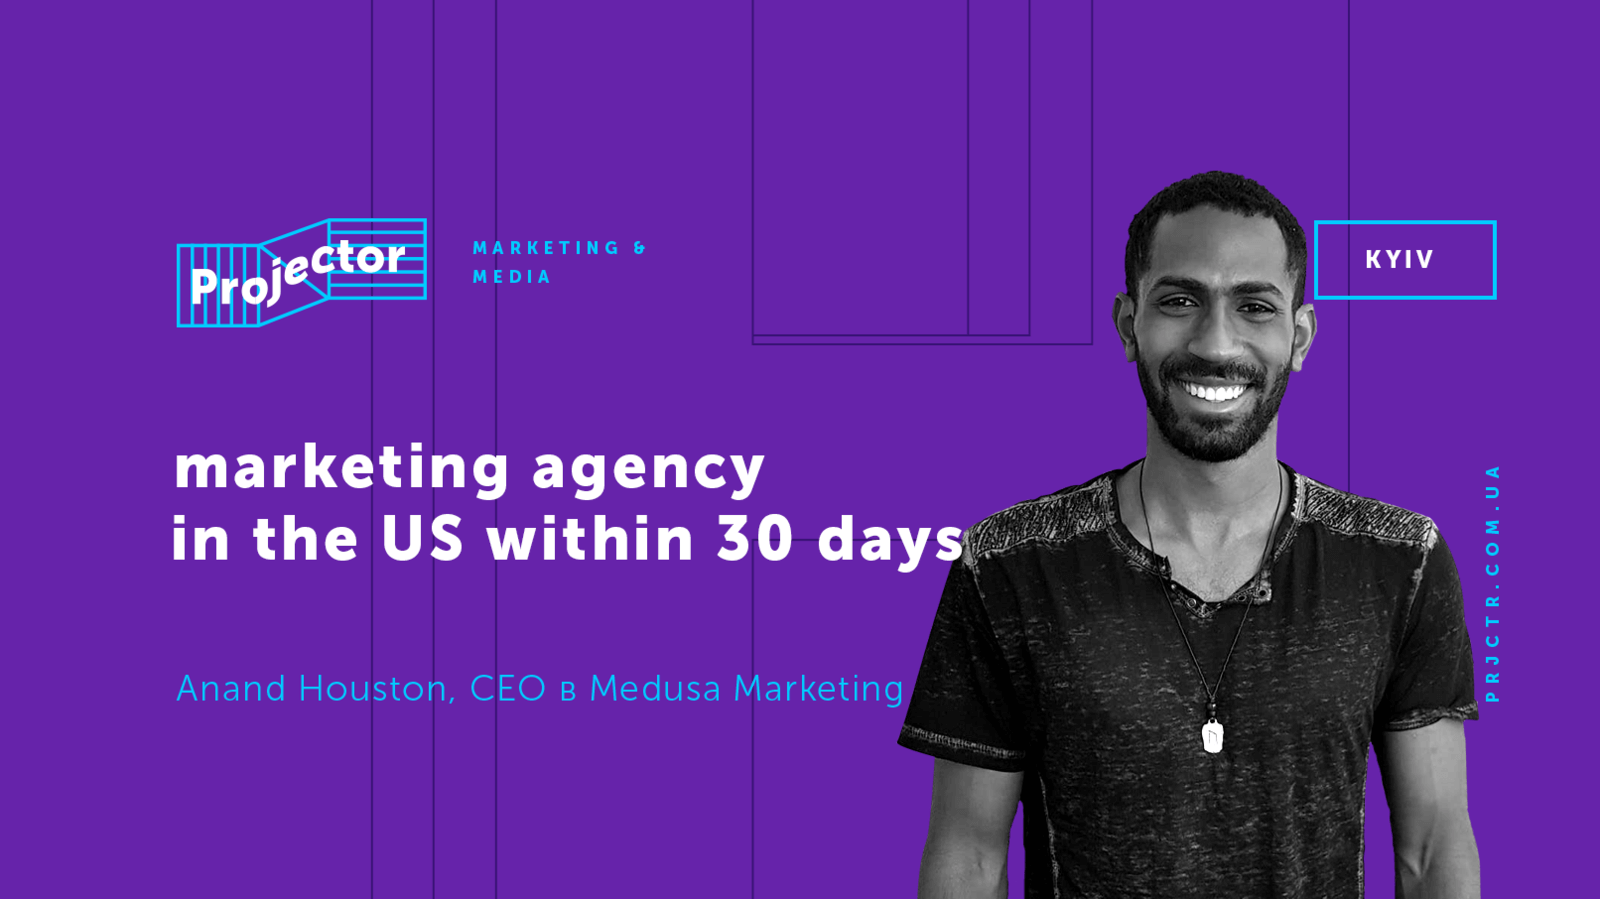 Marketing Talks. How to make a profitable marketing agency in the US within 30 days